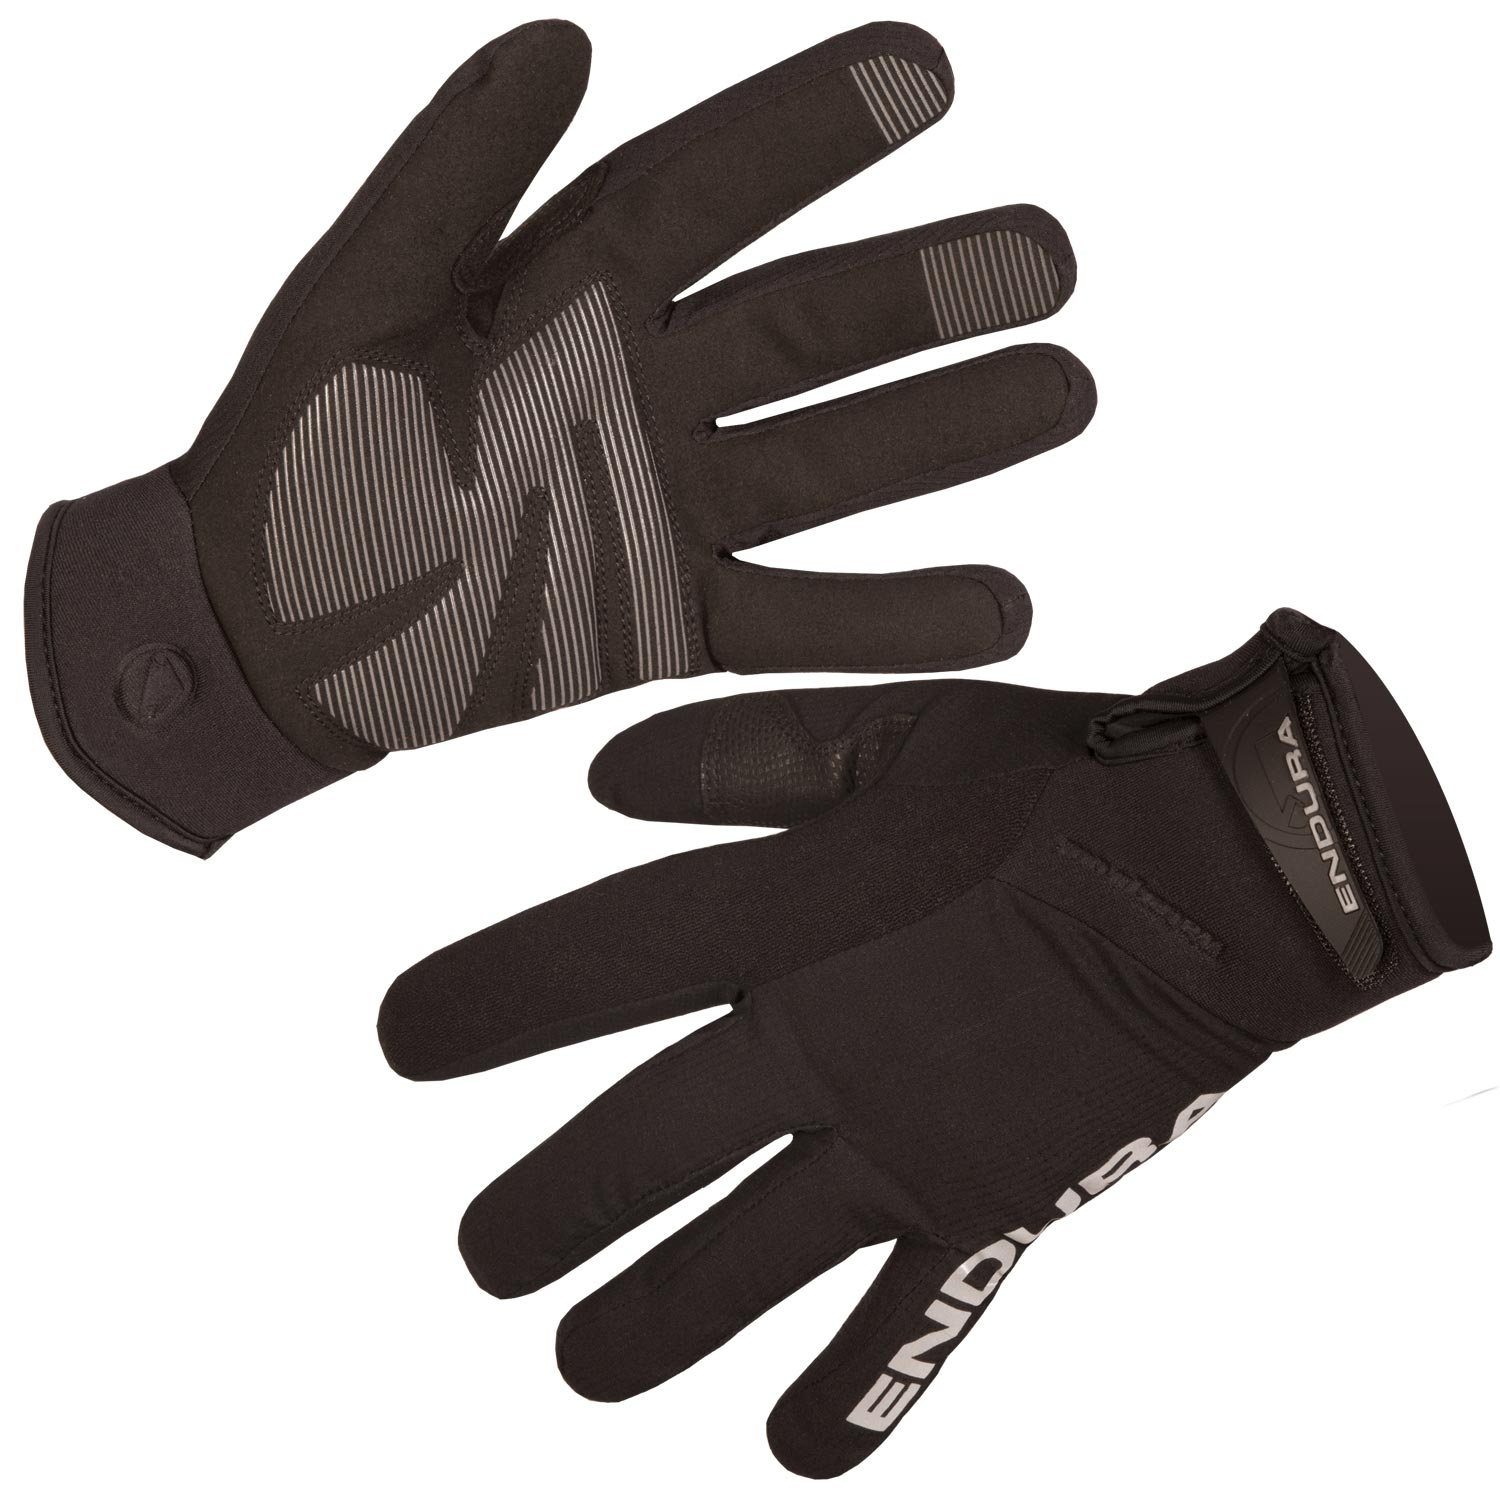 Endura Strike II Women's Medium Waterproof Windproof Gloves